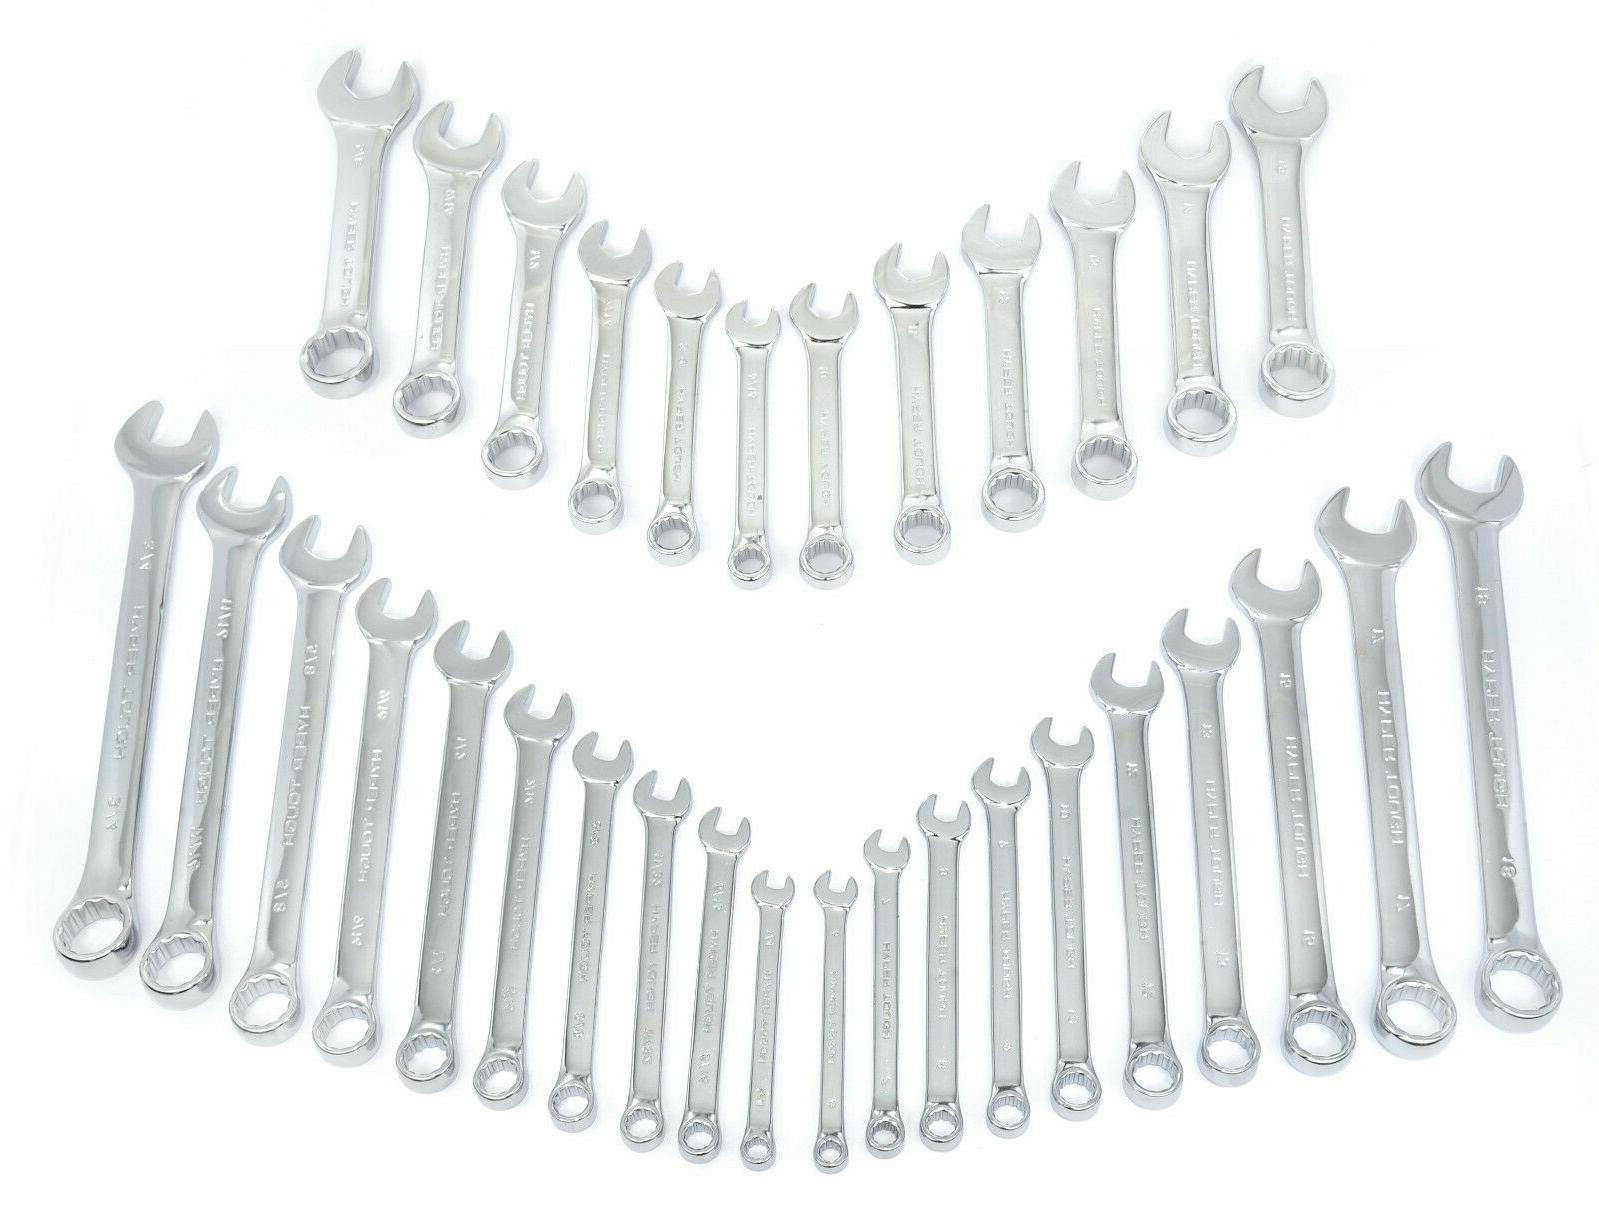 32 Combination Wrench Tool and SAE Standard